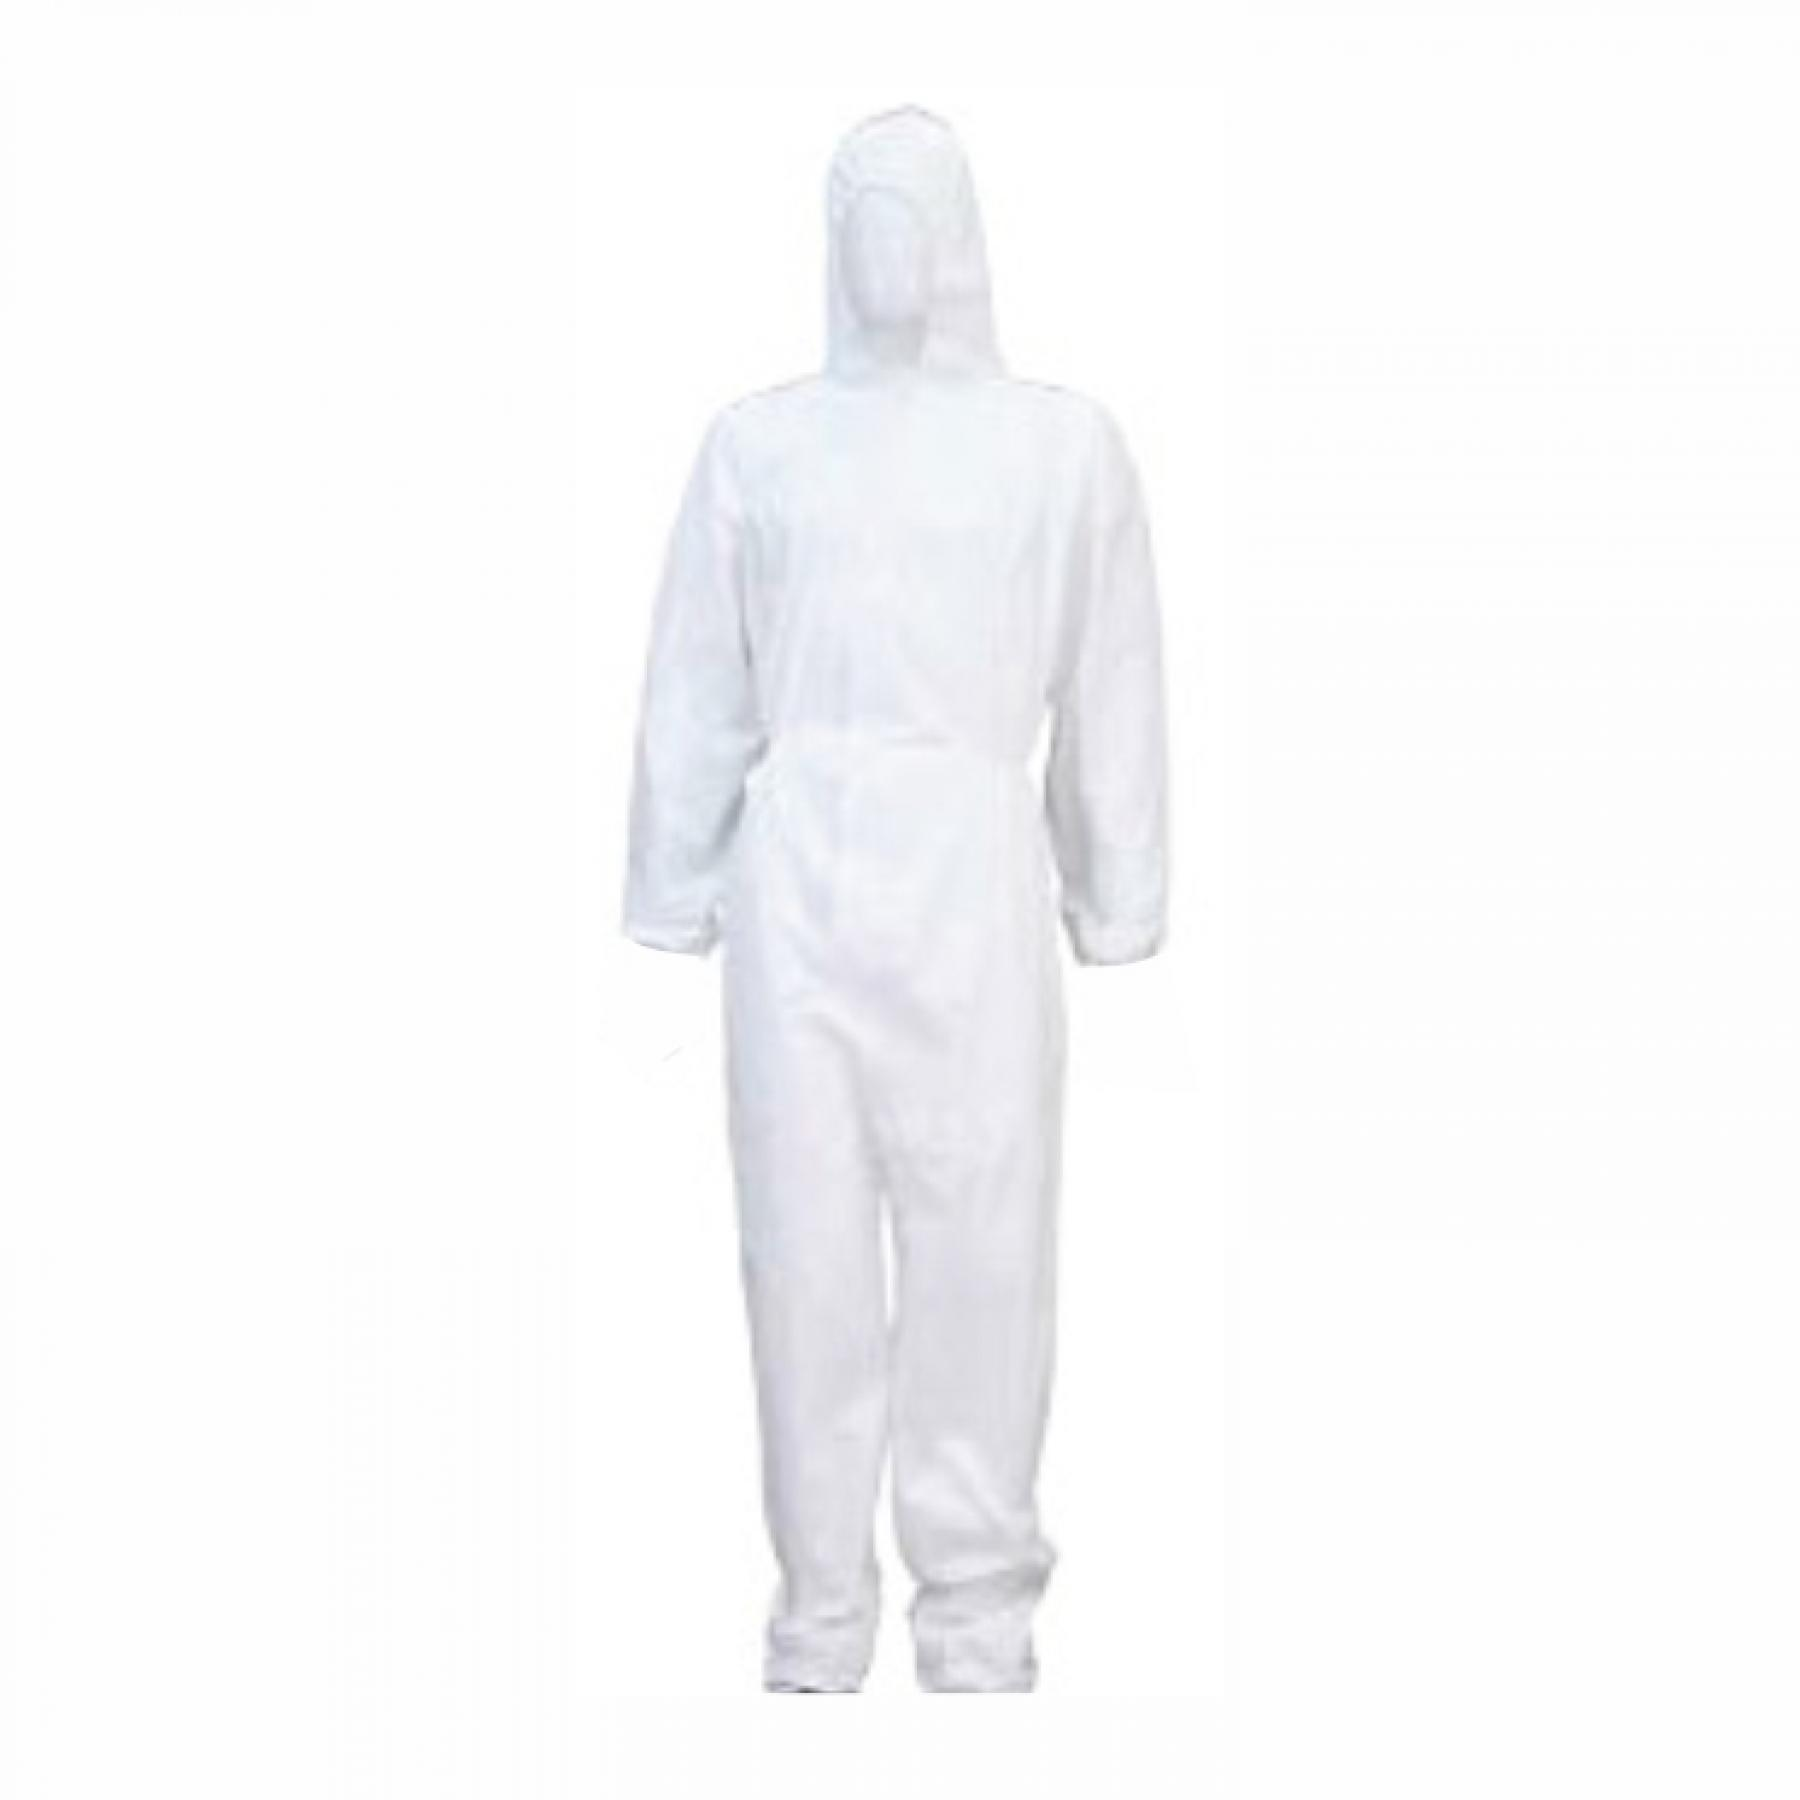 Promax White Disposable Overalls, 2x Large